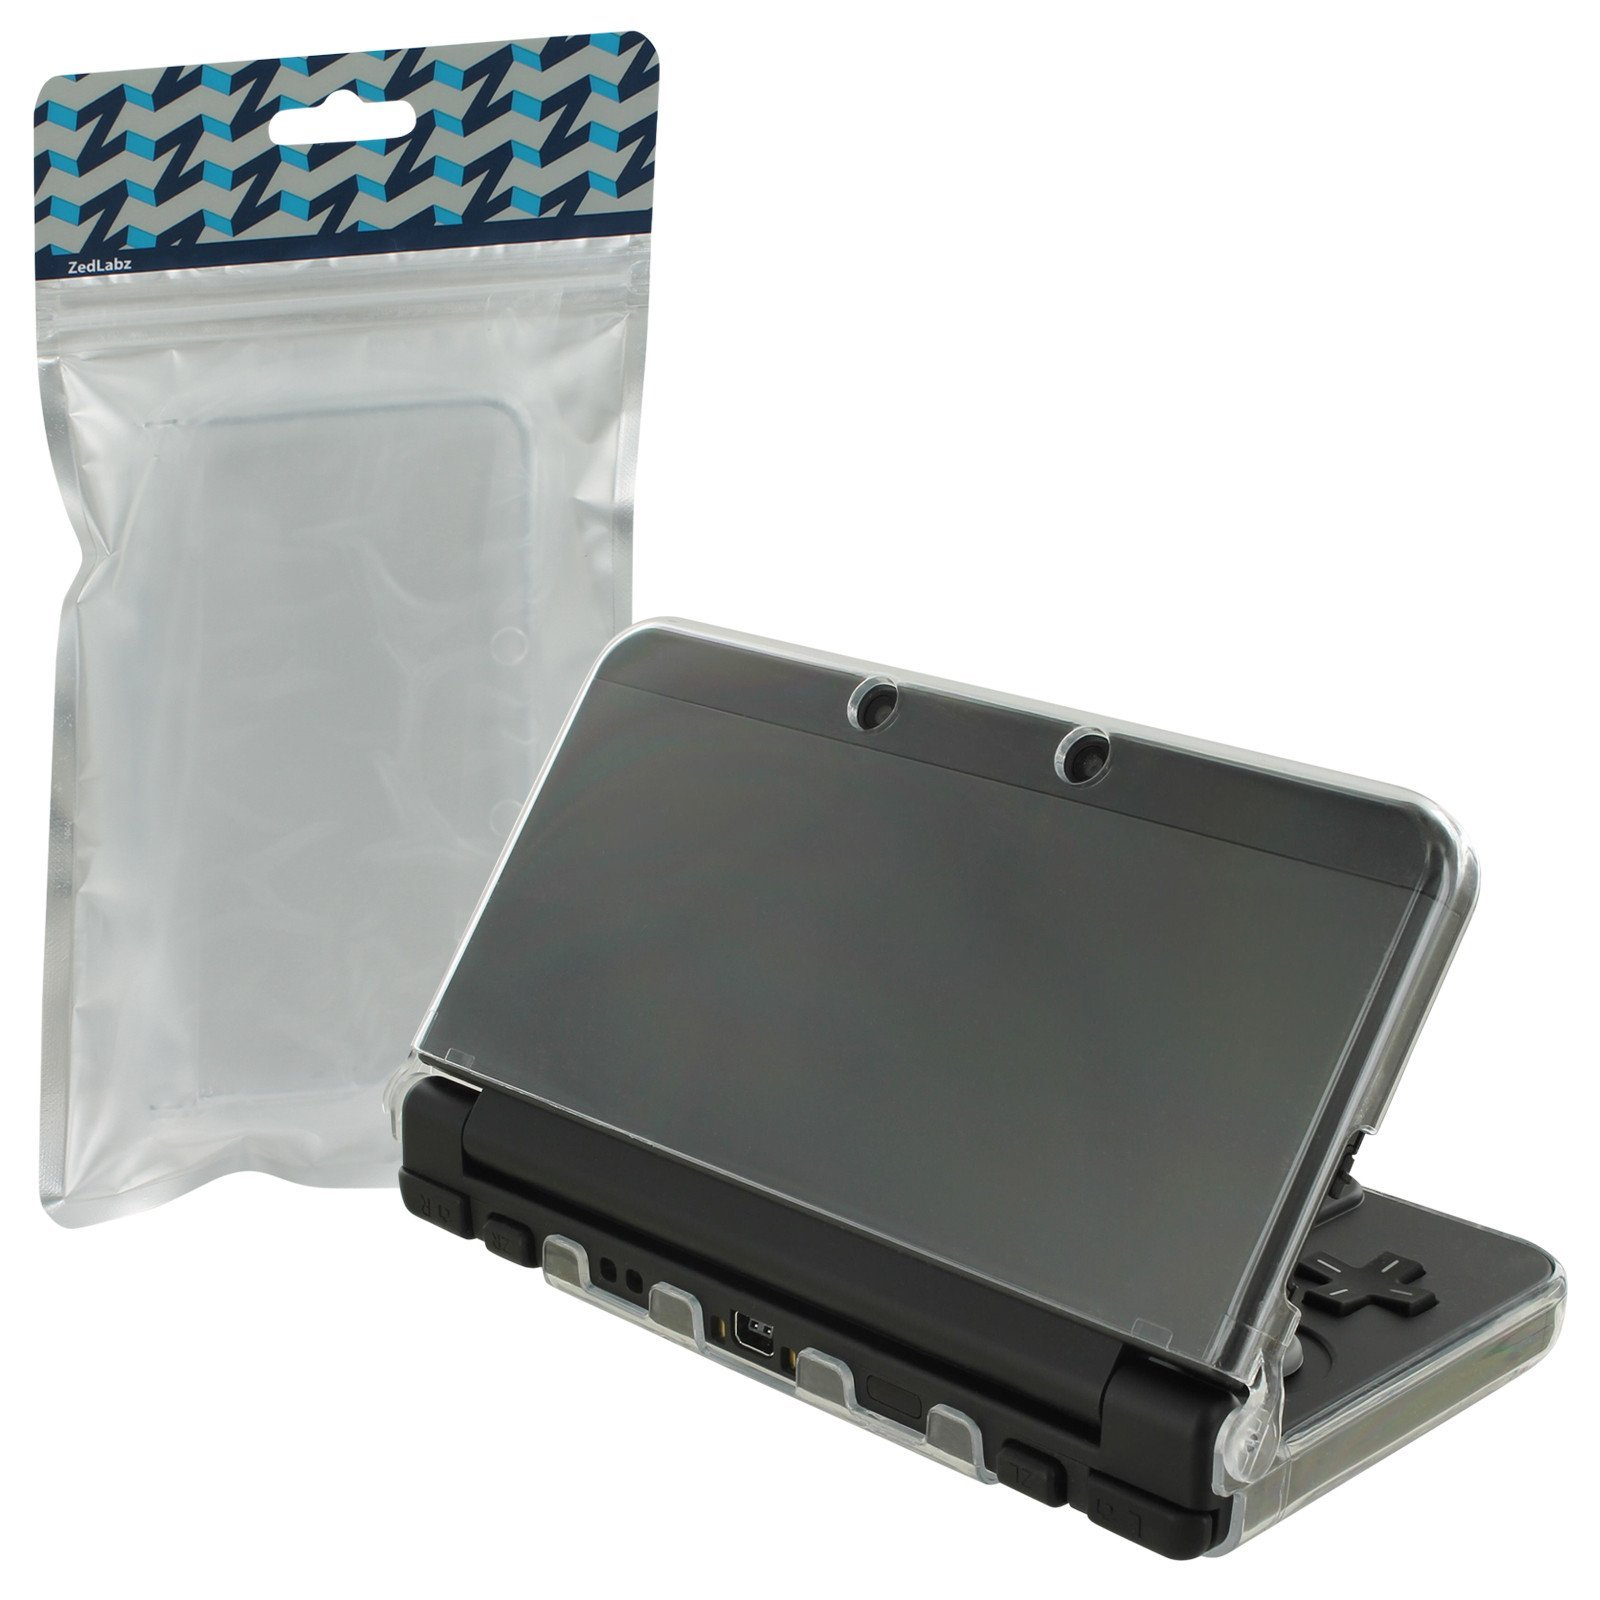 Primary image for ZedLabz case for Nintendo New 3DS - (New 2015 regular size model) - polycarbonat